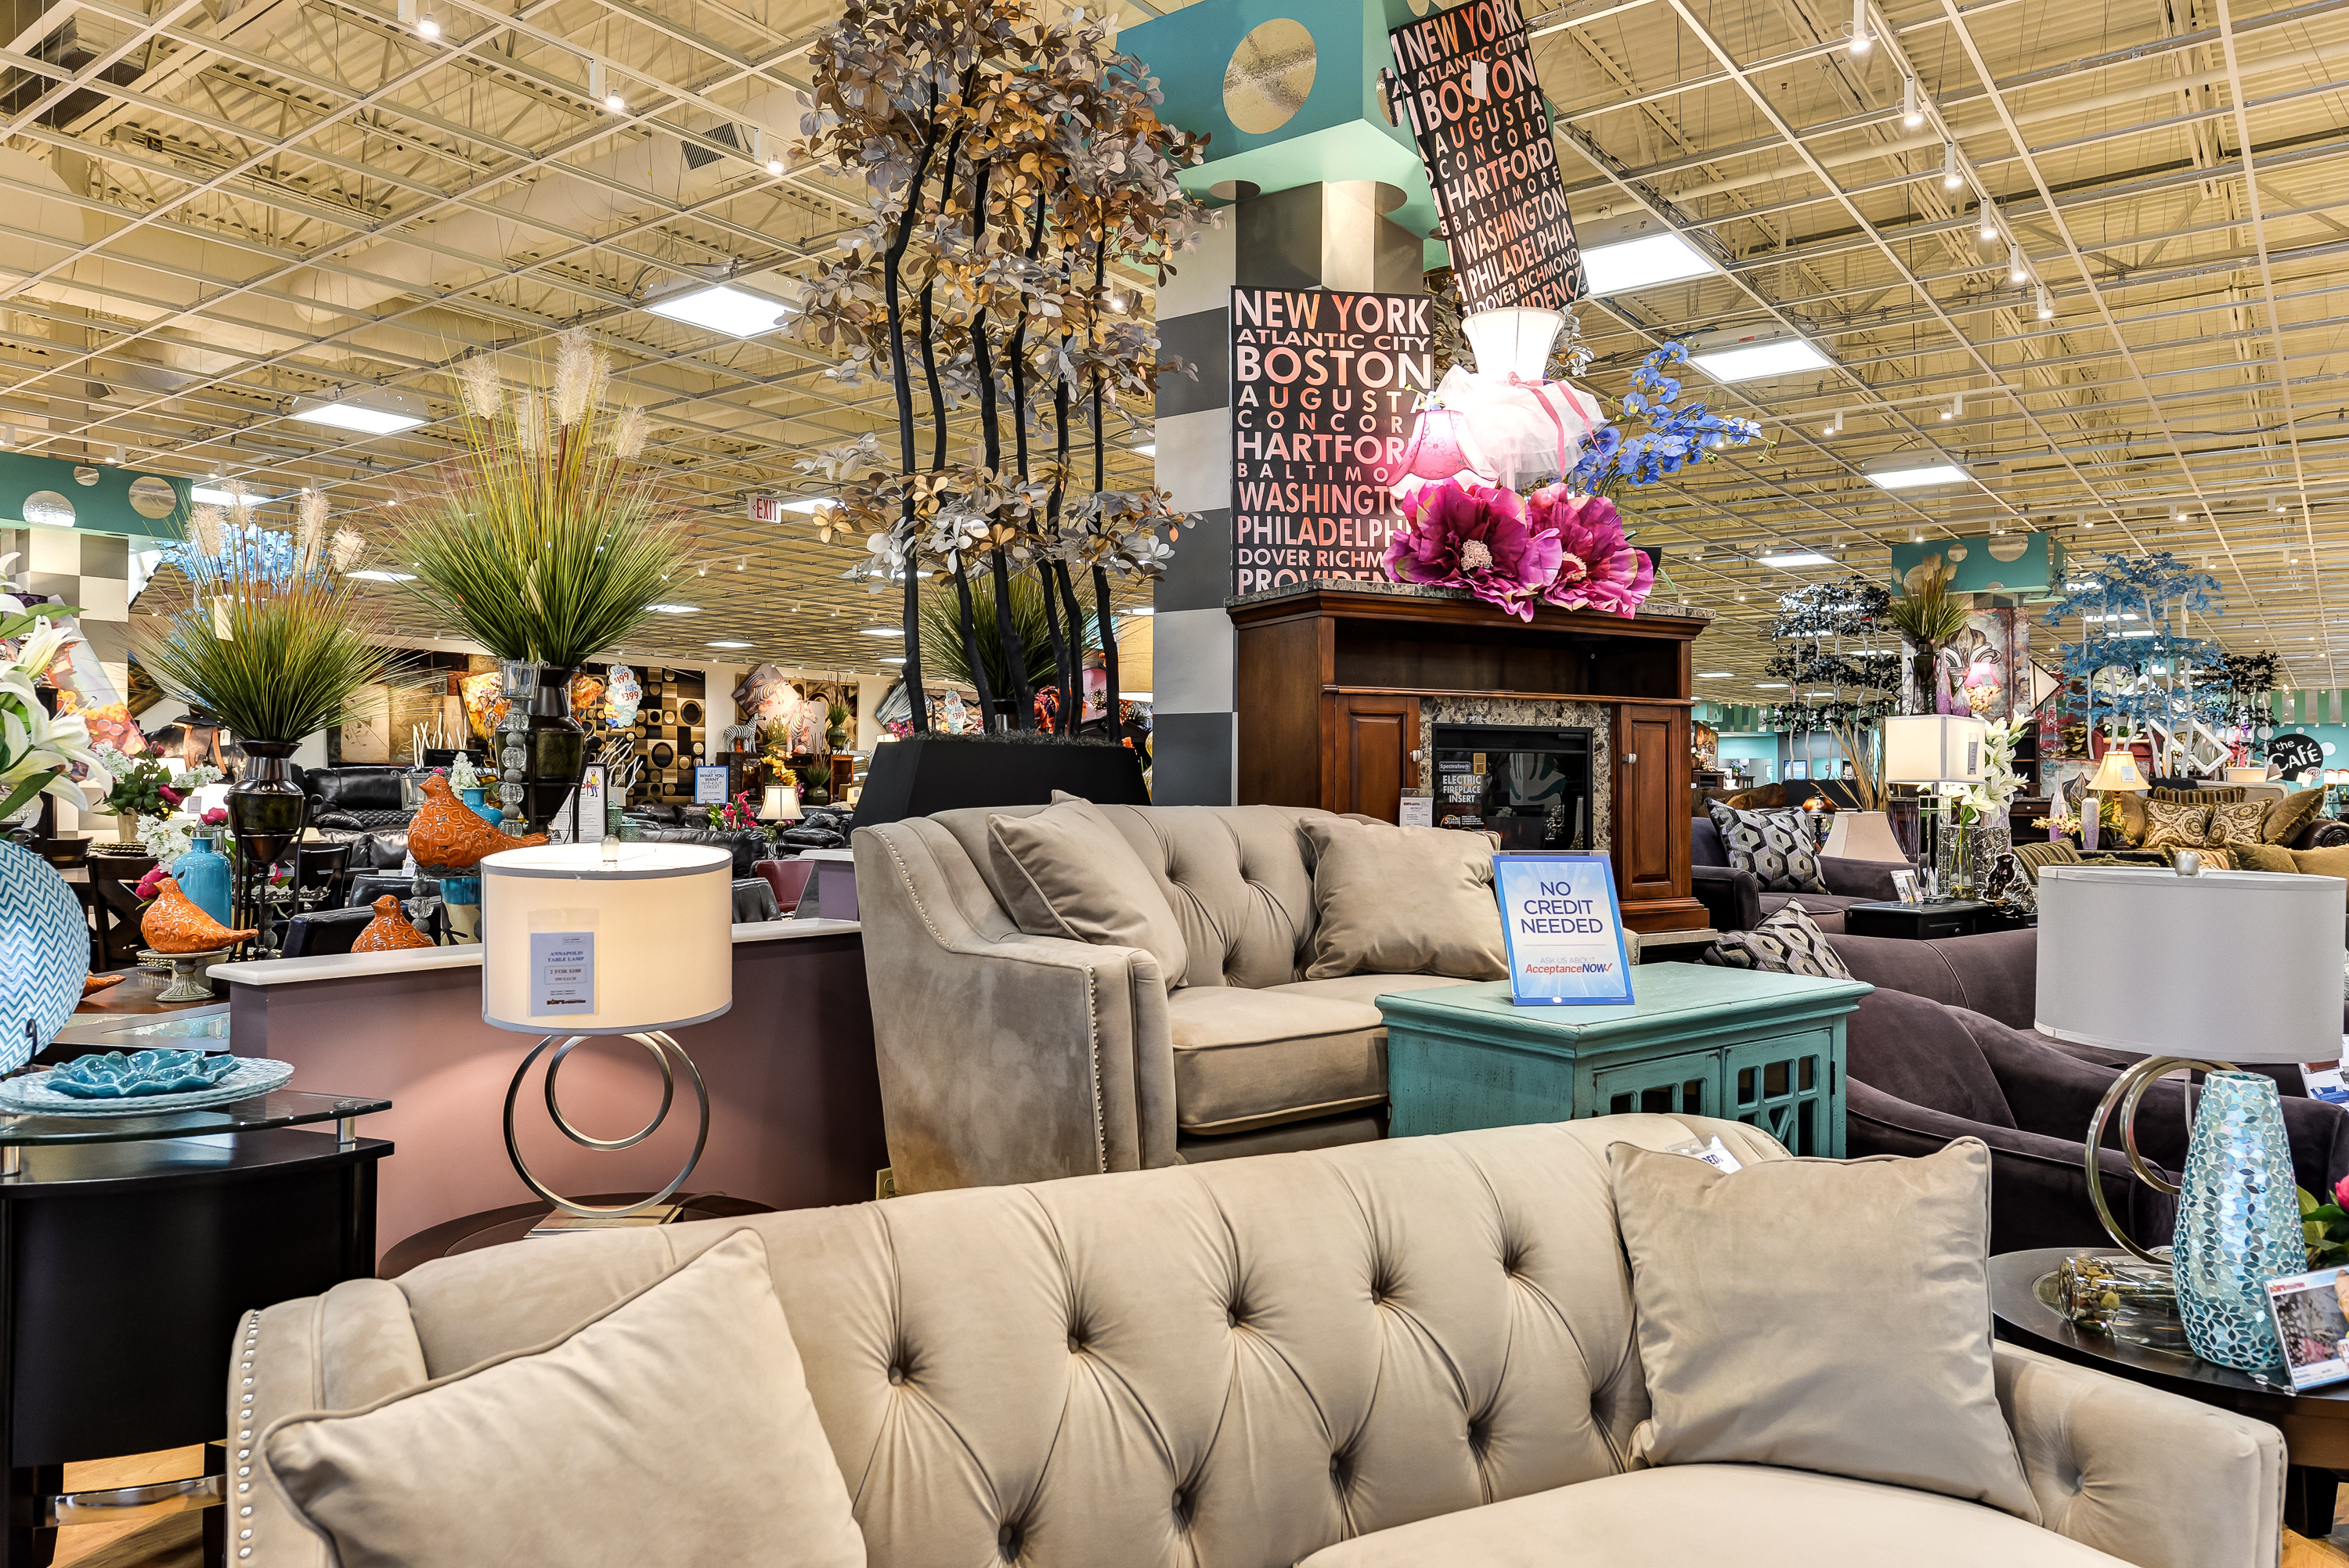 Merveilleux Bobu0027s Discount Furniture, A Retailer With Shops Across The East Coast And  Midwest, Is